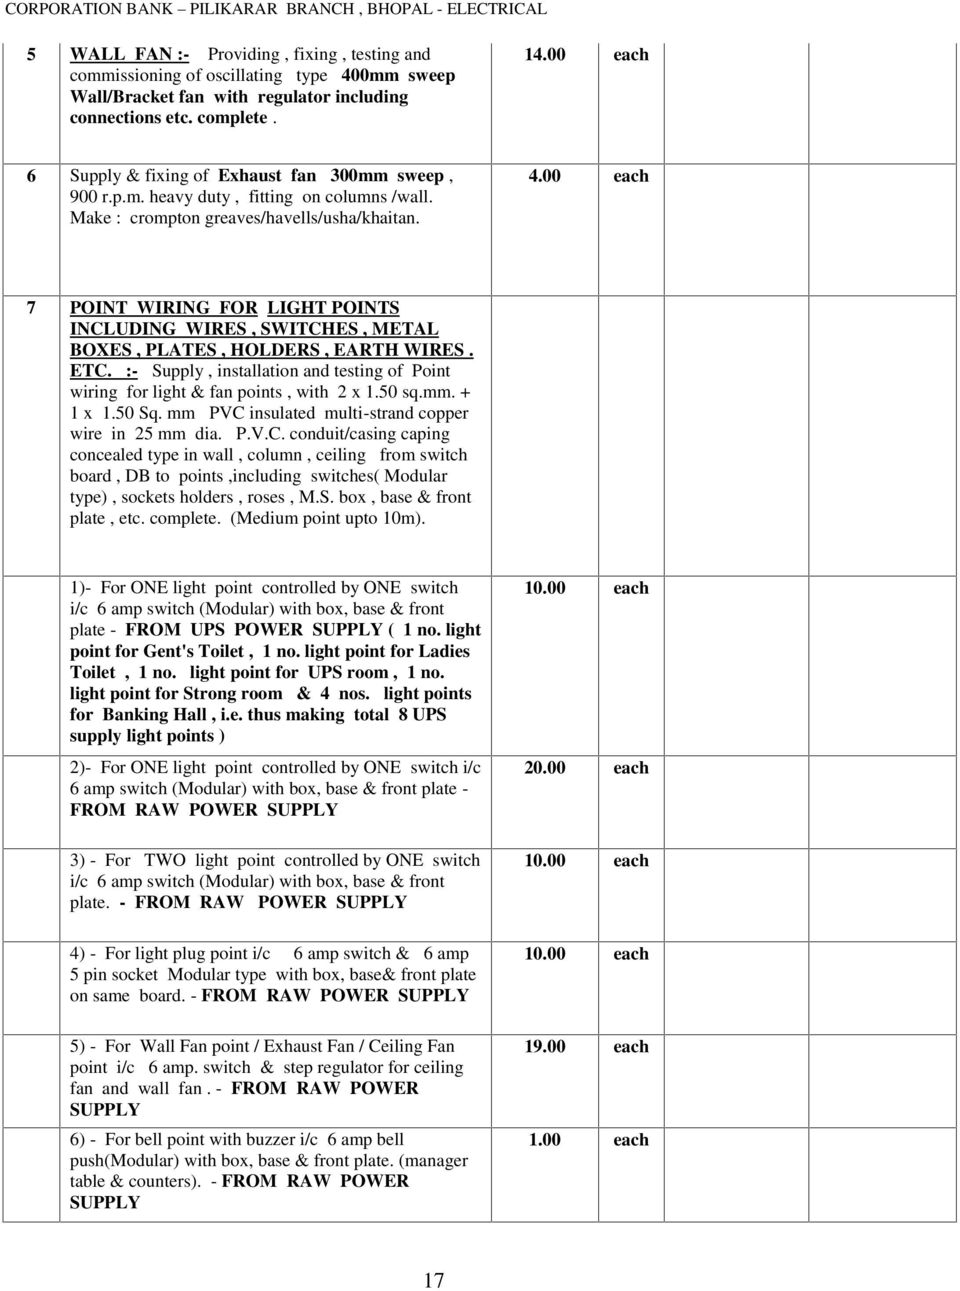 Corporation Bank Tender Document Of Electrical Work At Pilikarar Wiring Power Points 00 Each 7 Point For Light Including Wires Switches Metal Boxes